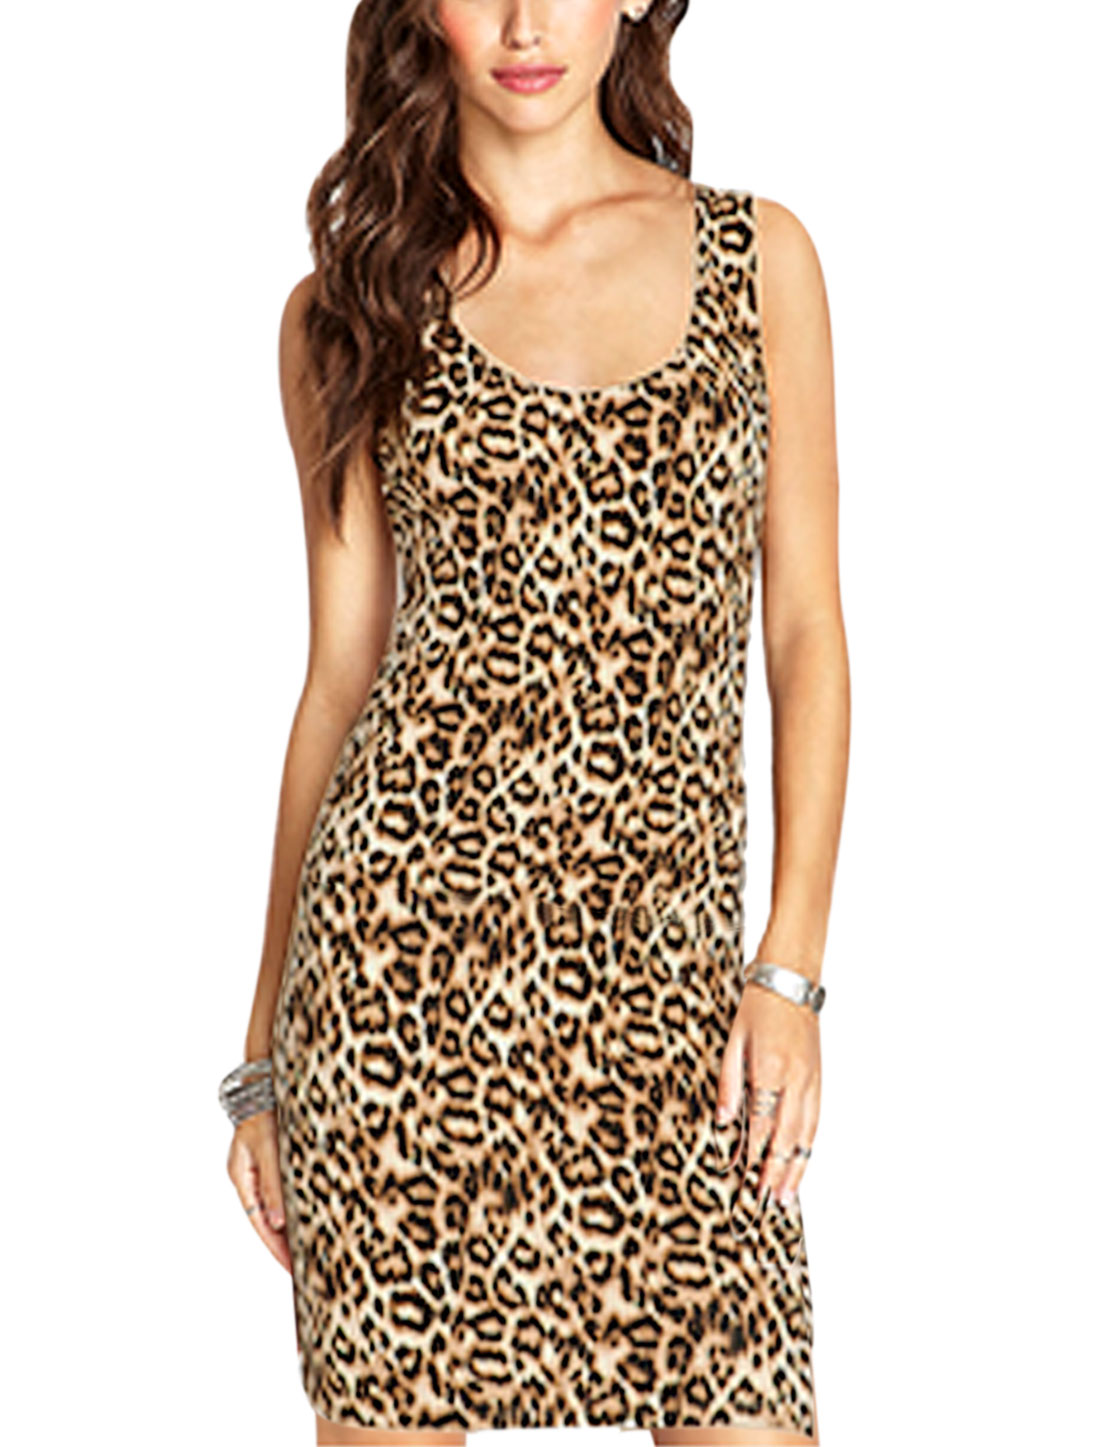 Woman Leopard Prints Scoop Neck Sleeveless Bodycon Dress Beige Brown S